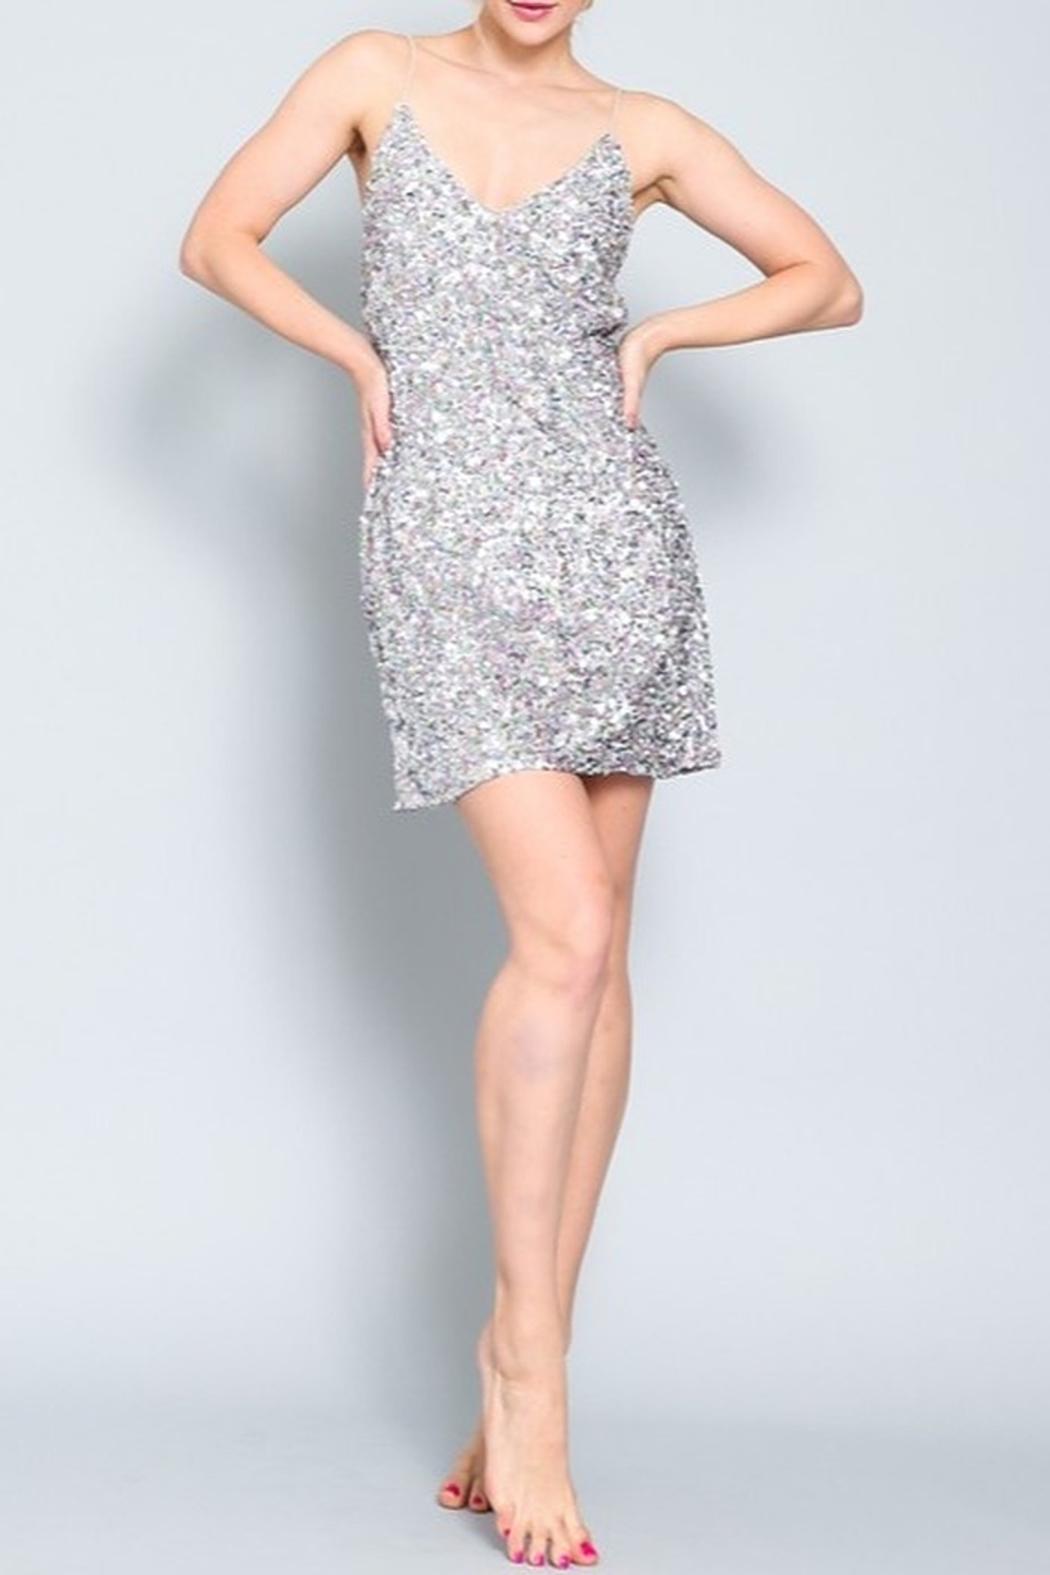 AAKAA Sequin Cocktail Dress - Main Image